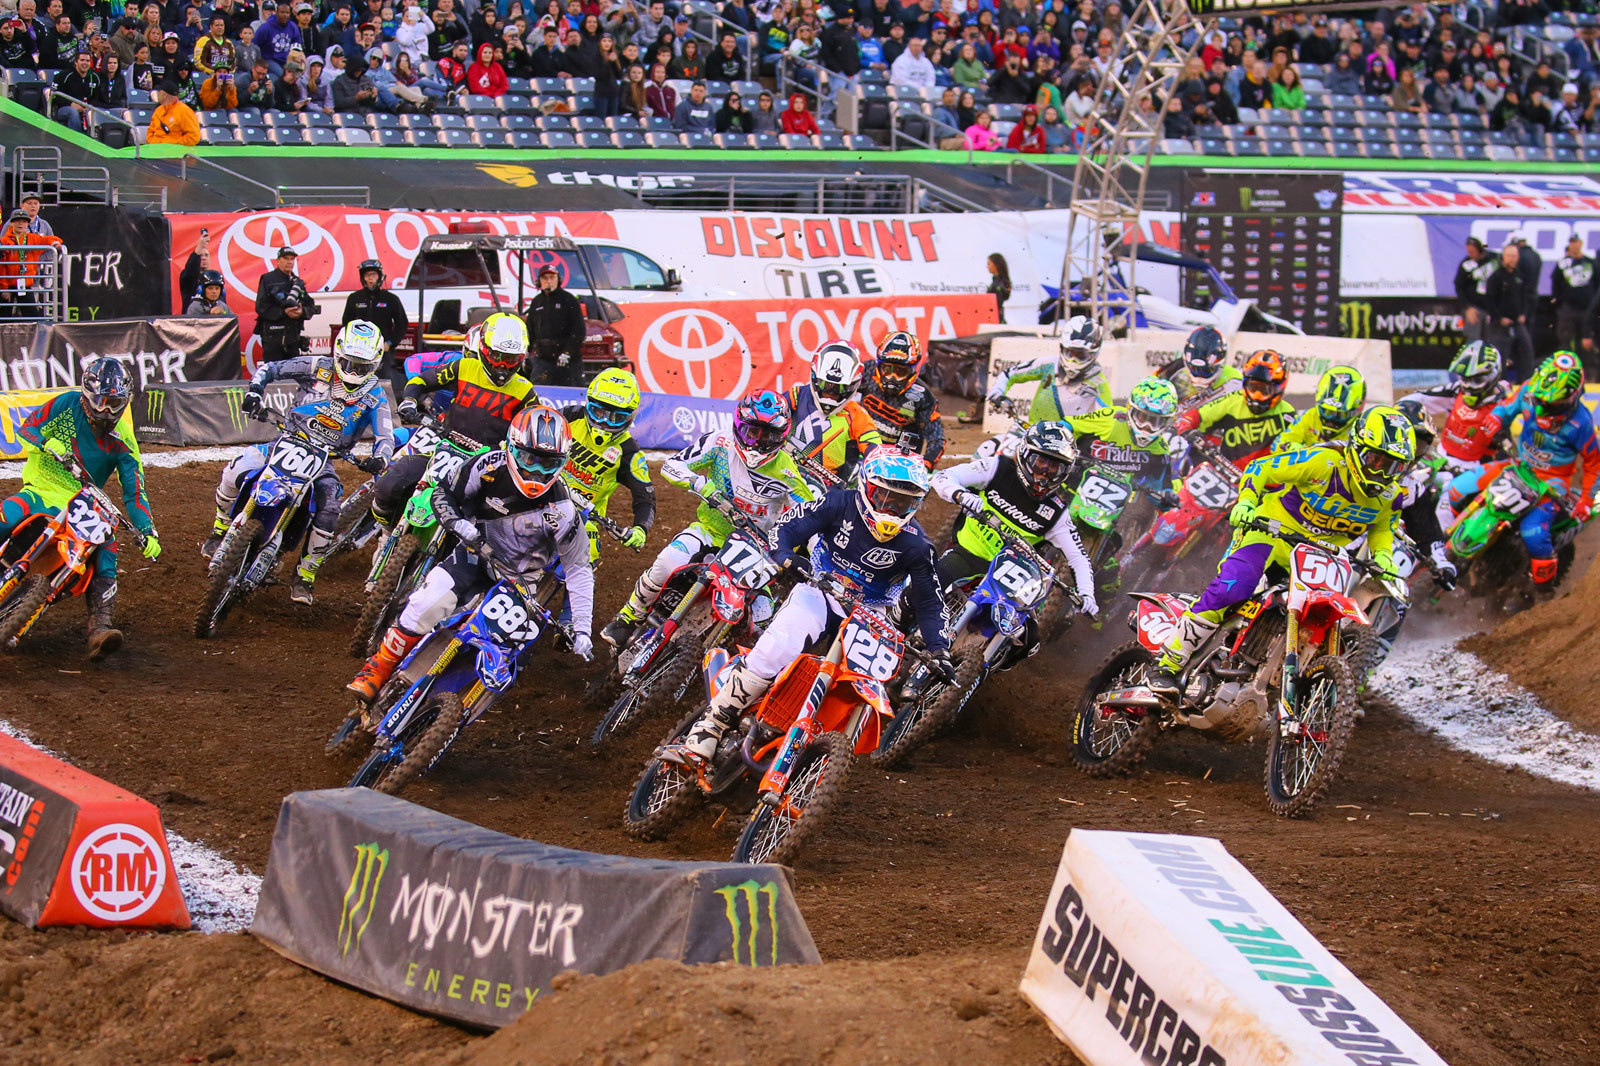 East Rutherford Photo Blast - 250 Heat Race One Start - Photo Blast: East Rutherford - Motocross Pictures - Vital MX